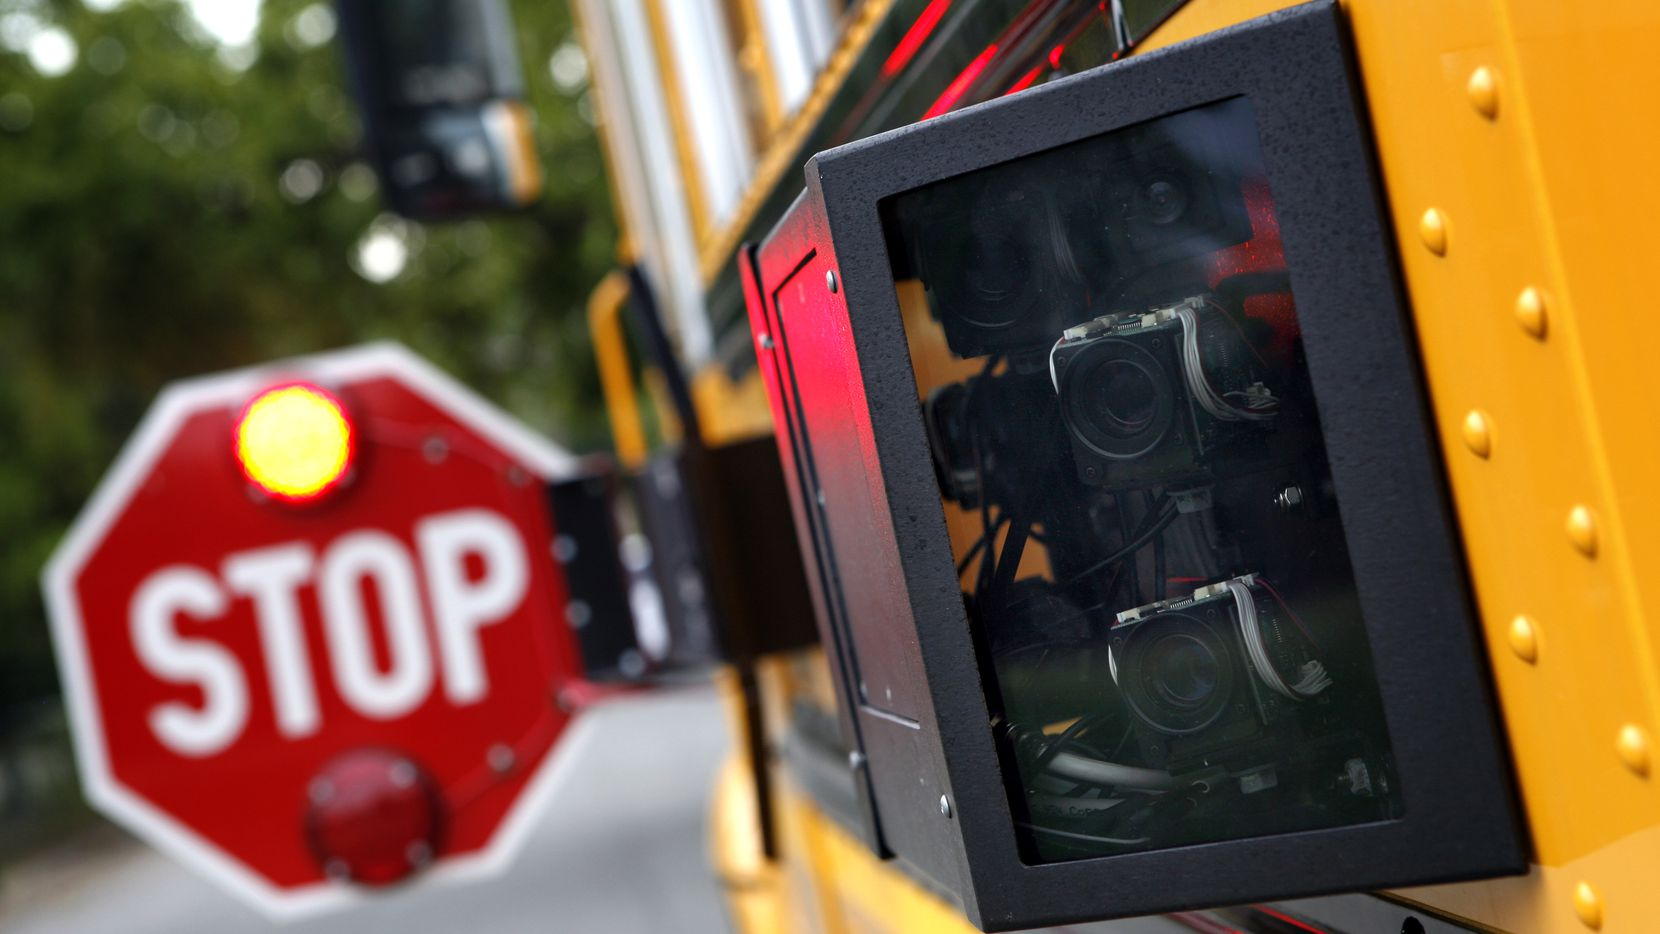 A new Dallas County Schools bus which has cameras on the outside near the stop-arm to catch drivers who fail to halt at Dallas County Schools Administration building in Dallas on Wednesday, August 18, 2010. (Lara Solt/The Dallas Morning News) 08232010xMETRO